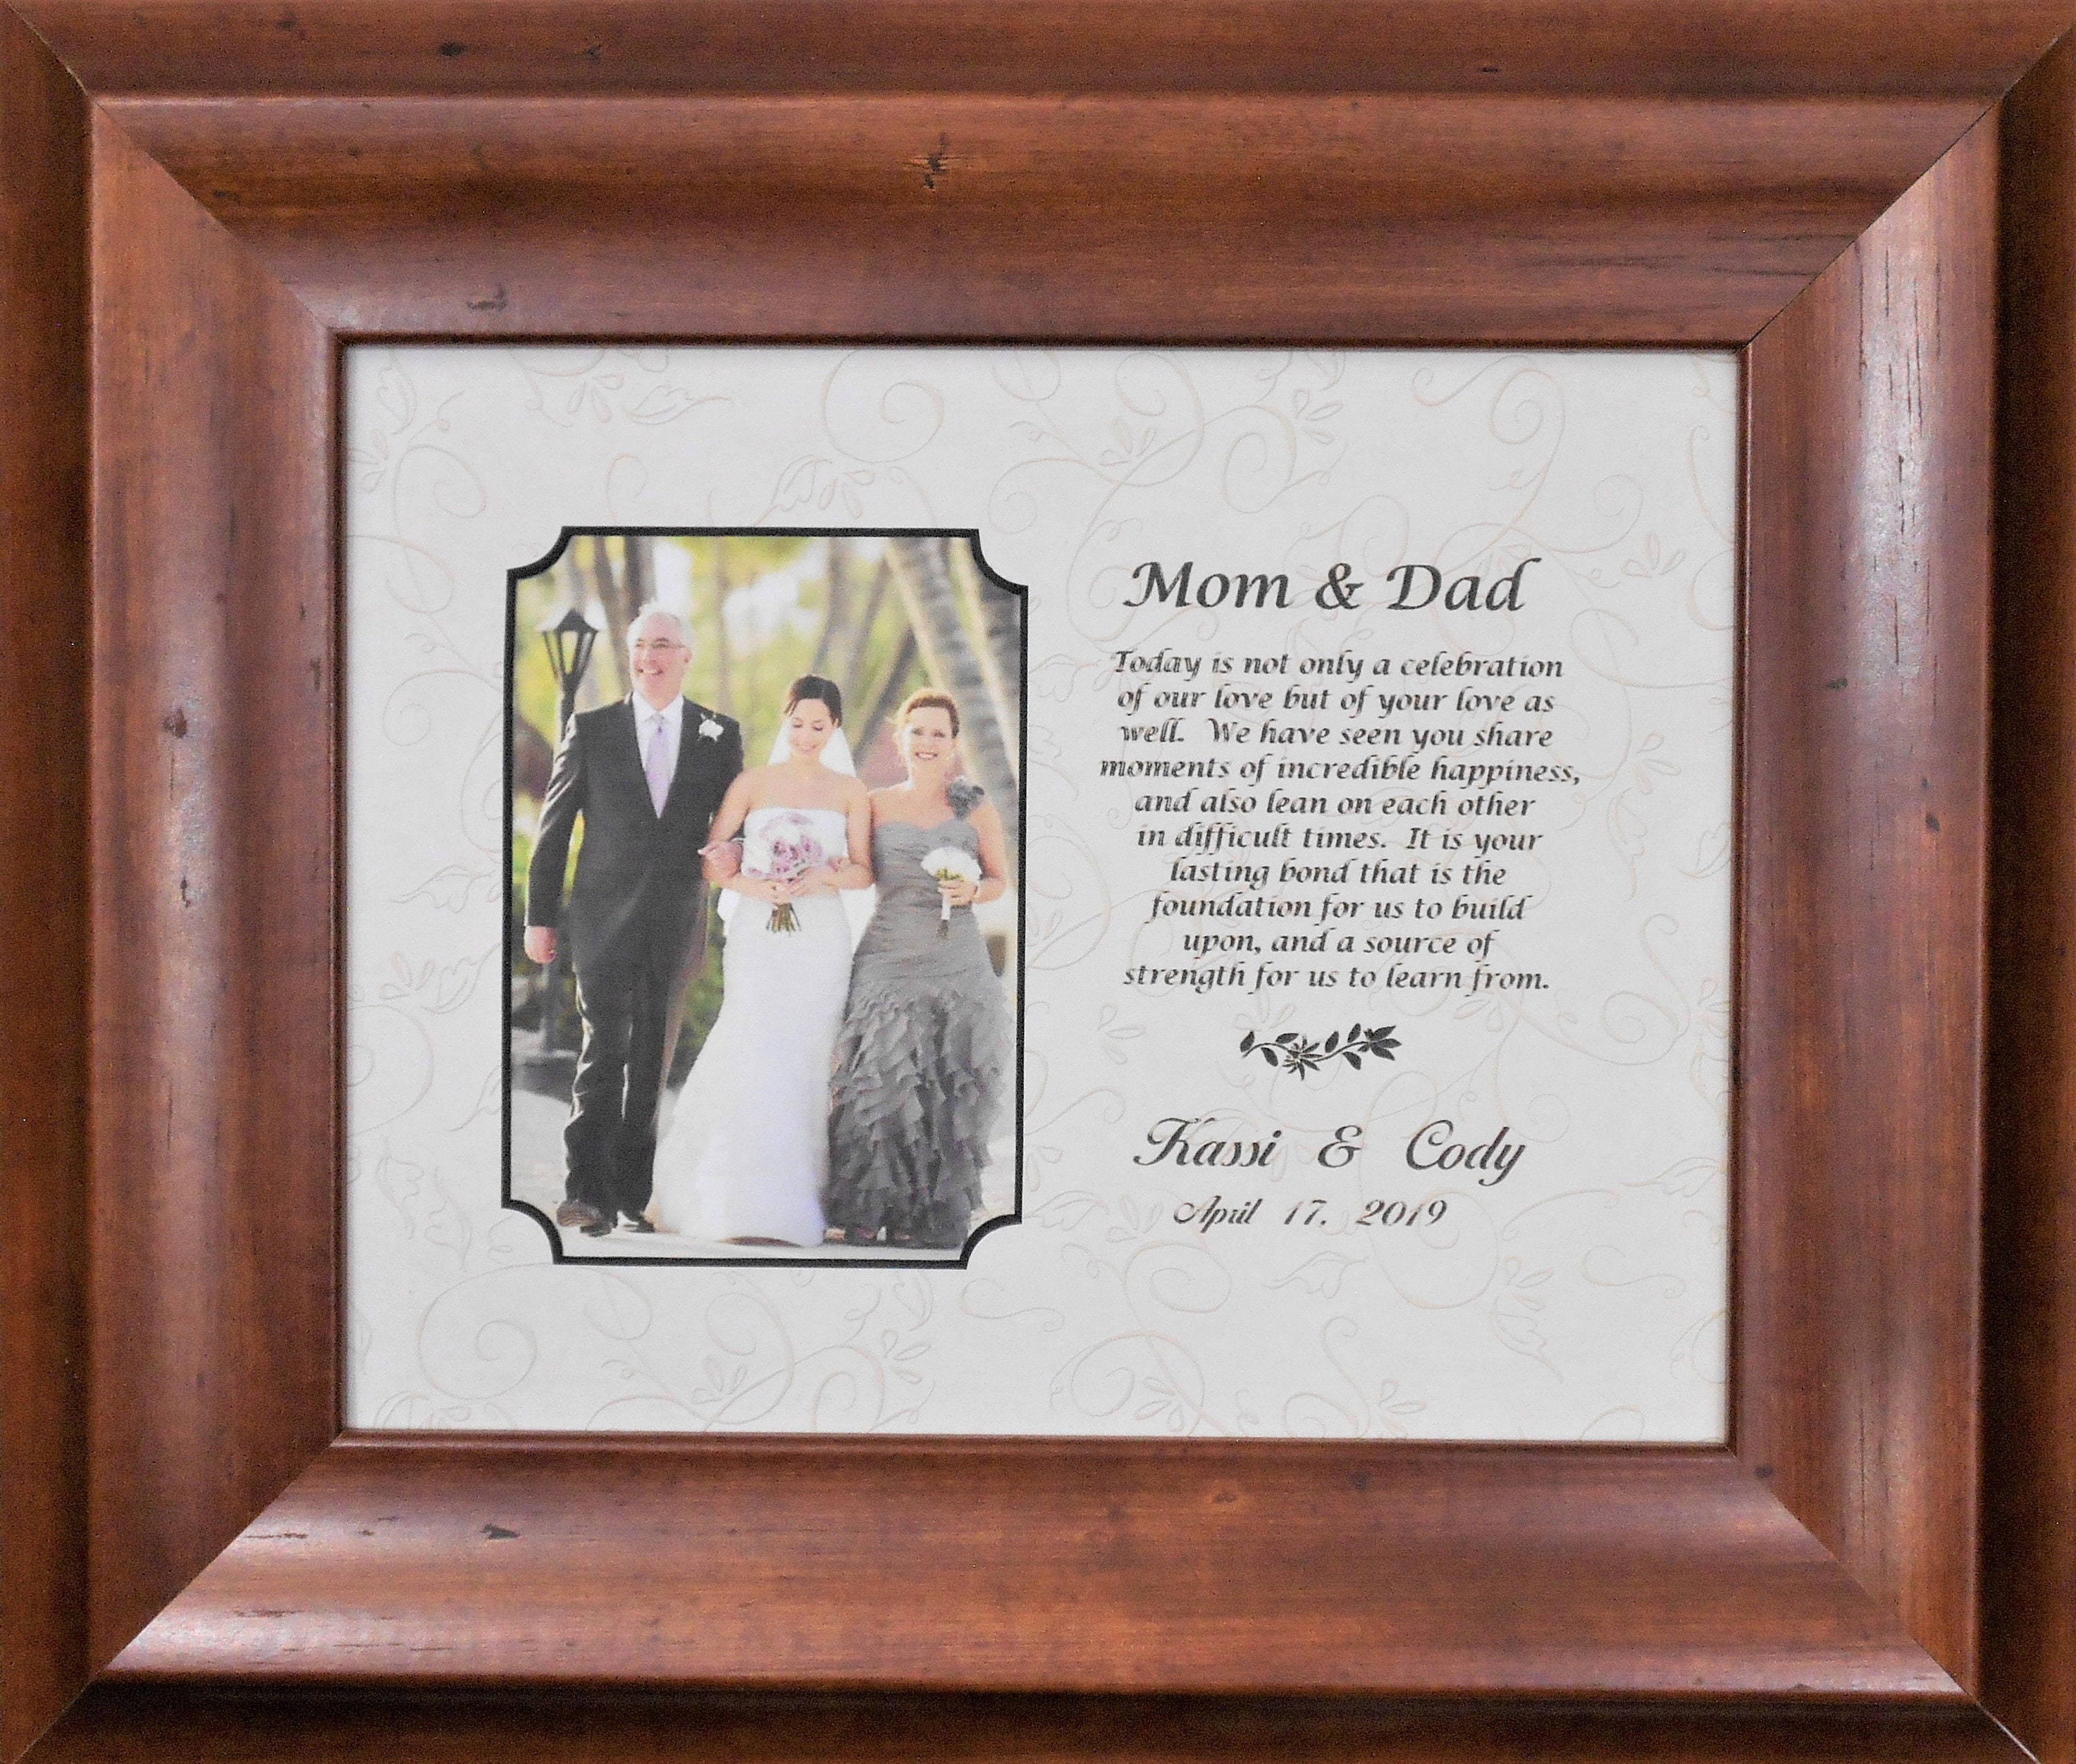 Personalised Wedding Day Photo Frame 8x10 Gift Bride Groom